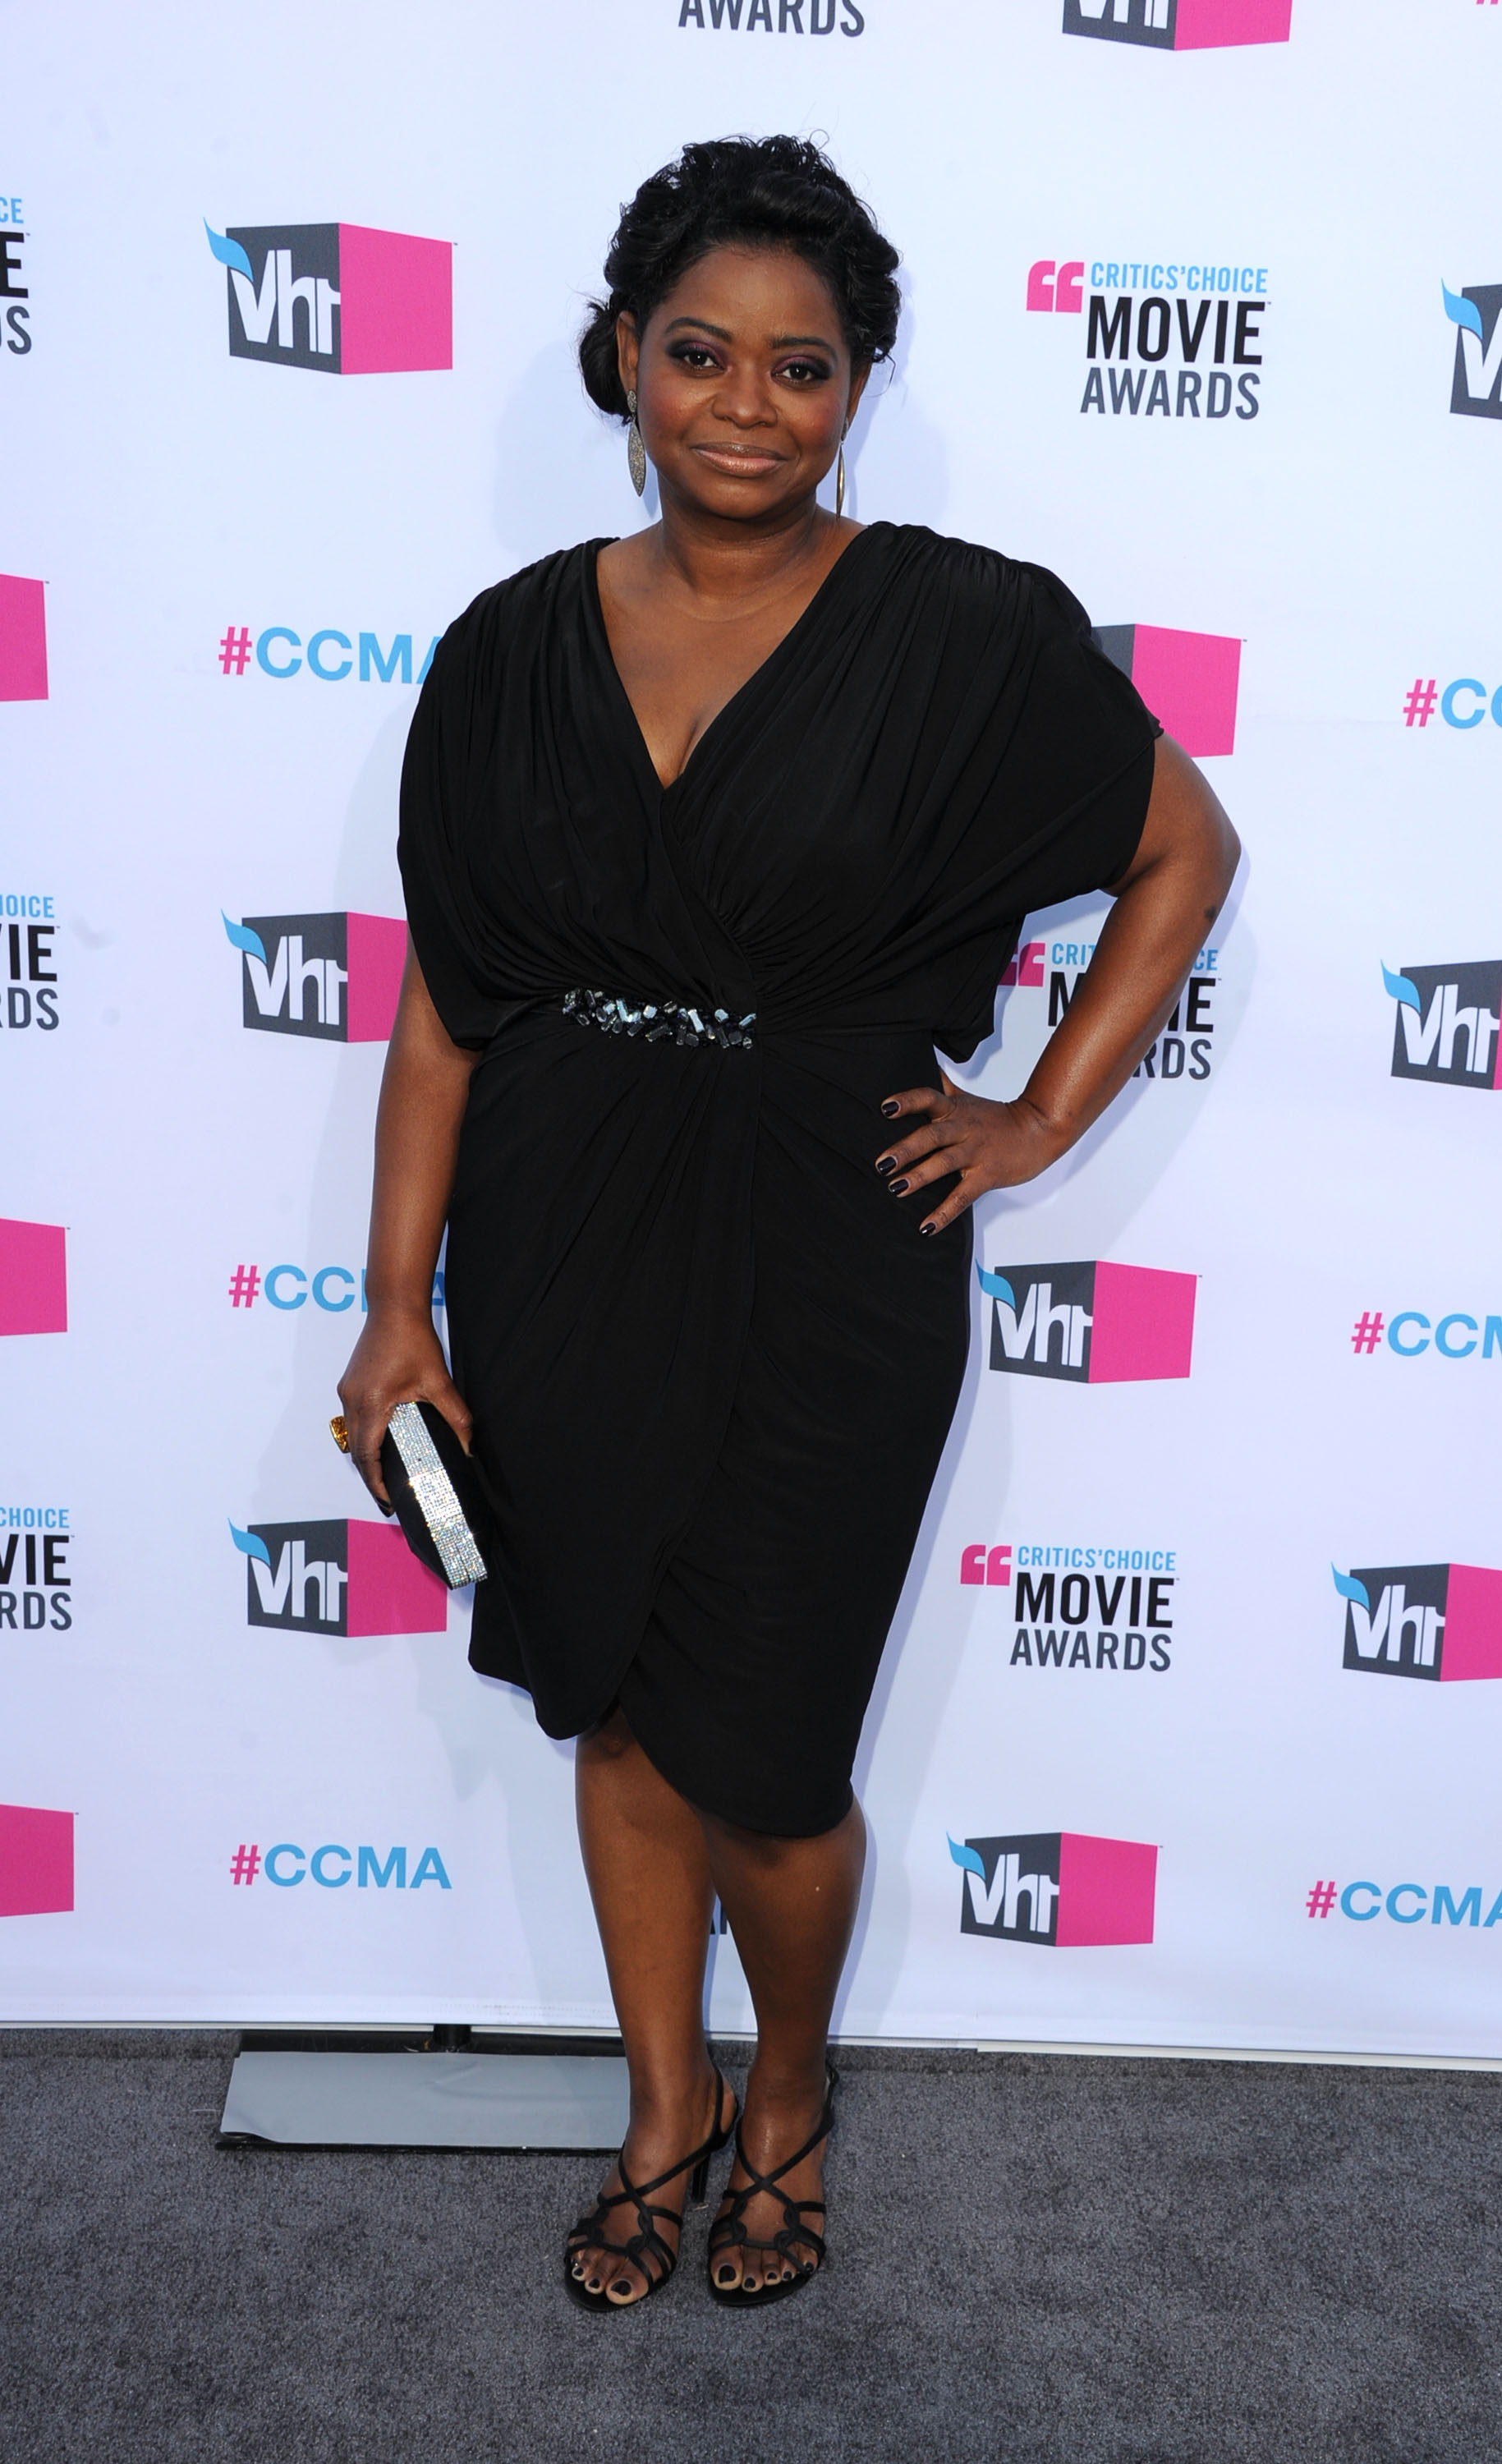 Octavia Spencer smiled on the grey carpet at the 2012 Critics' Choice Movie Awards.